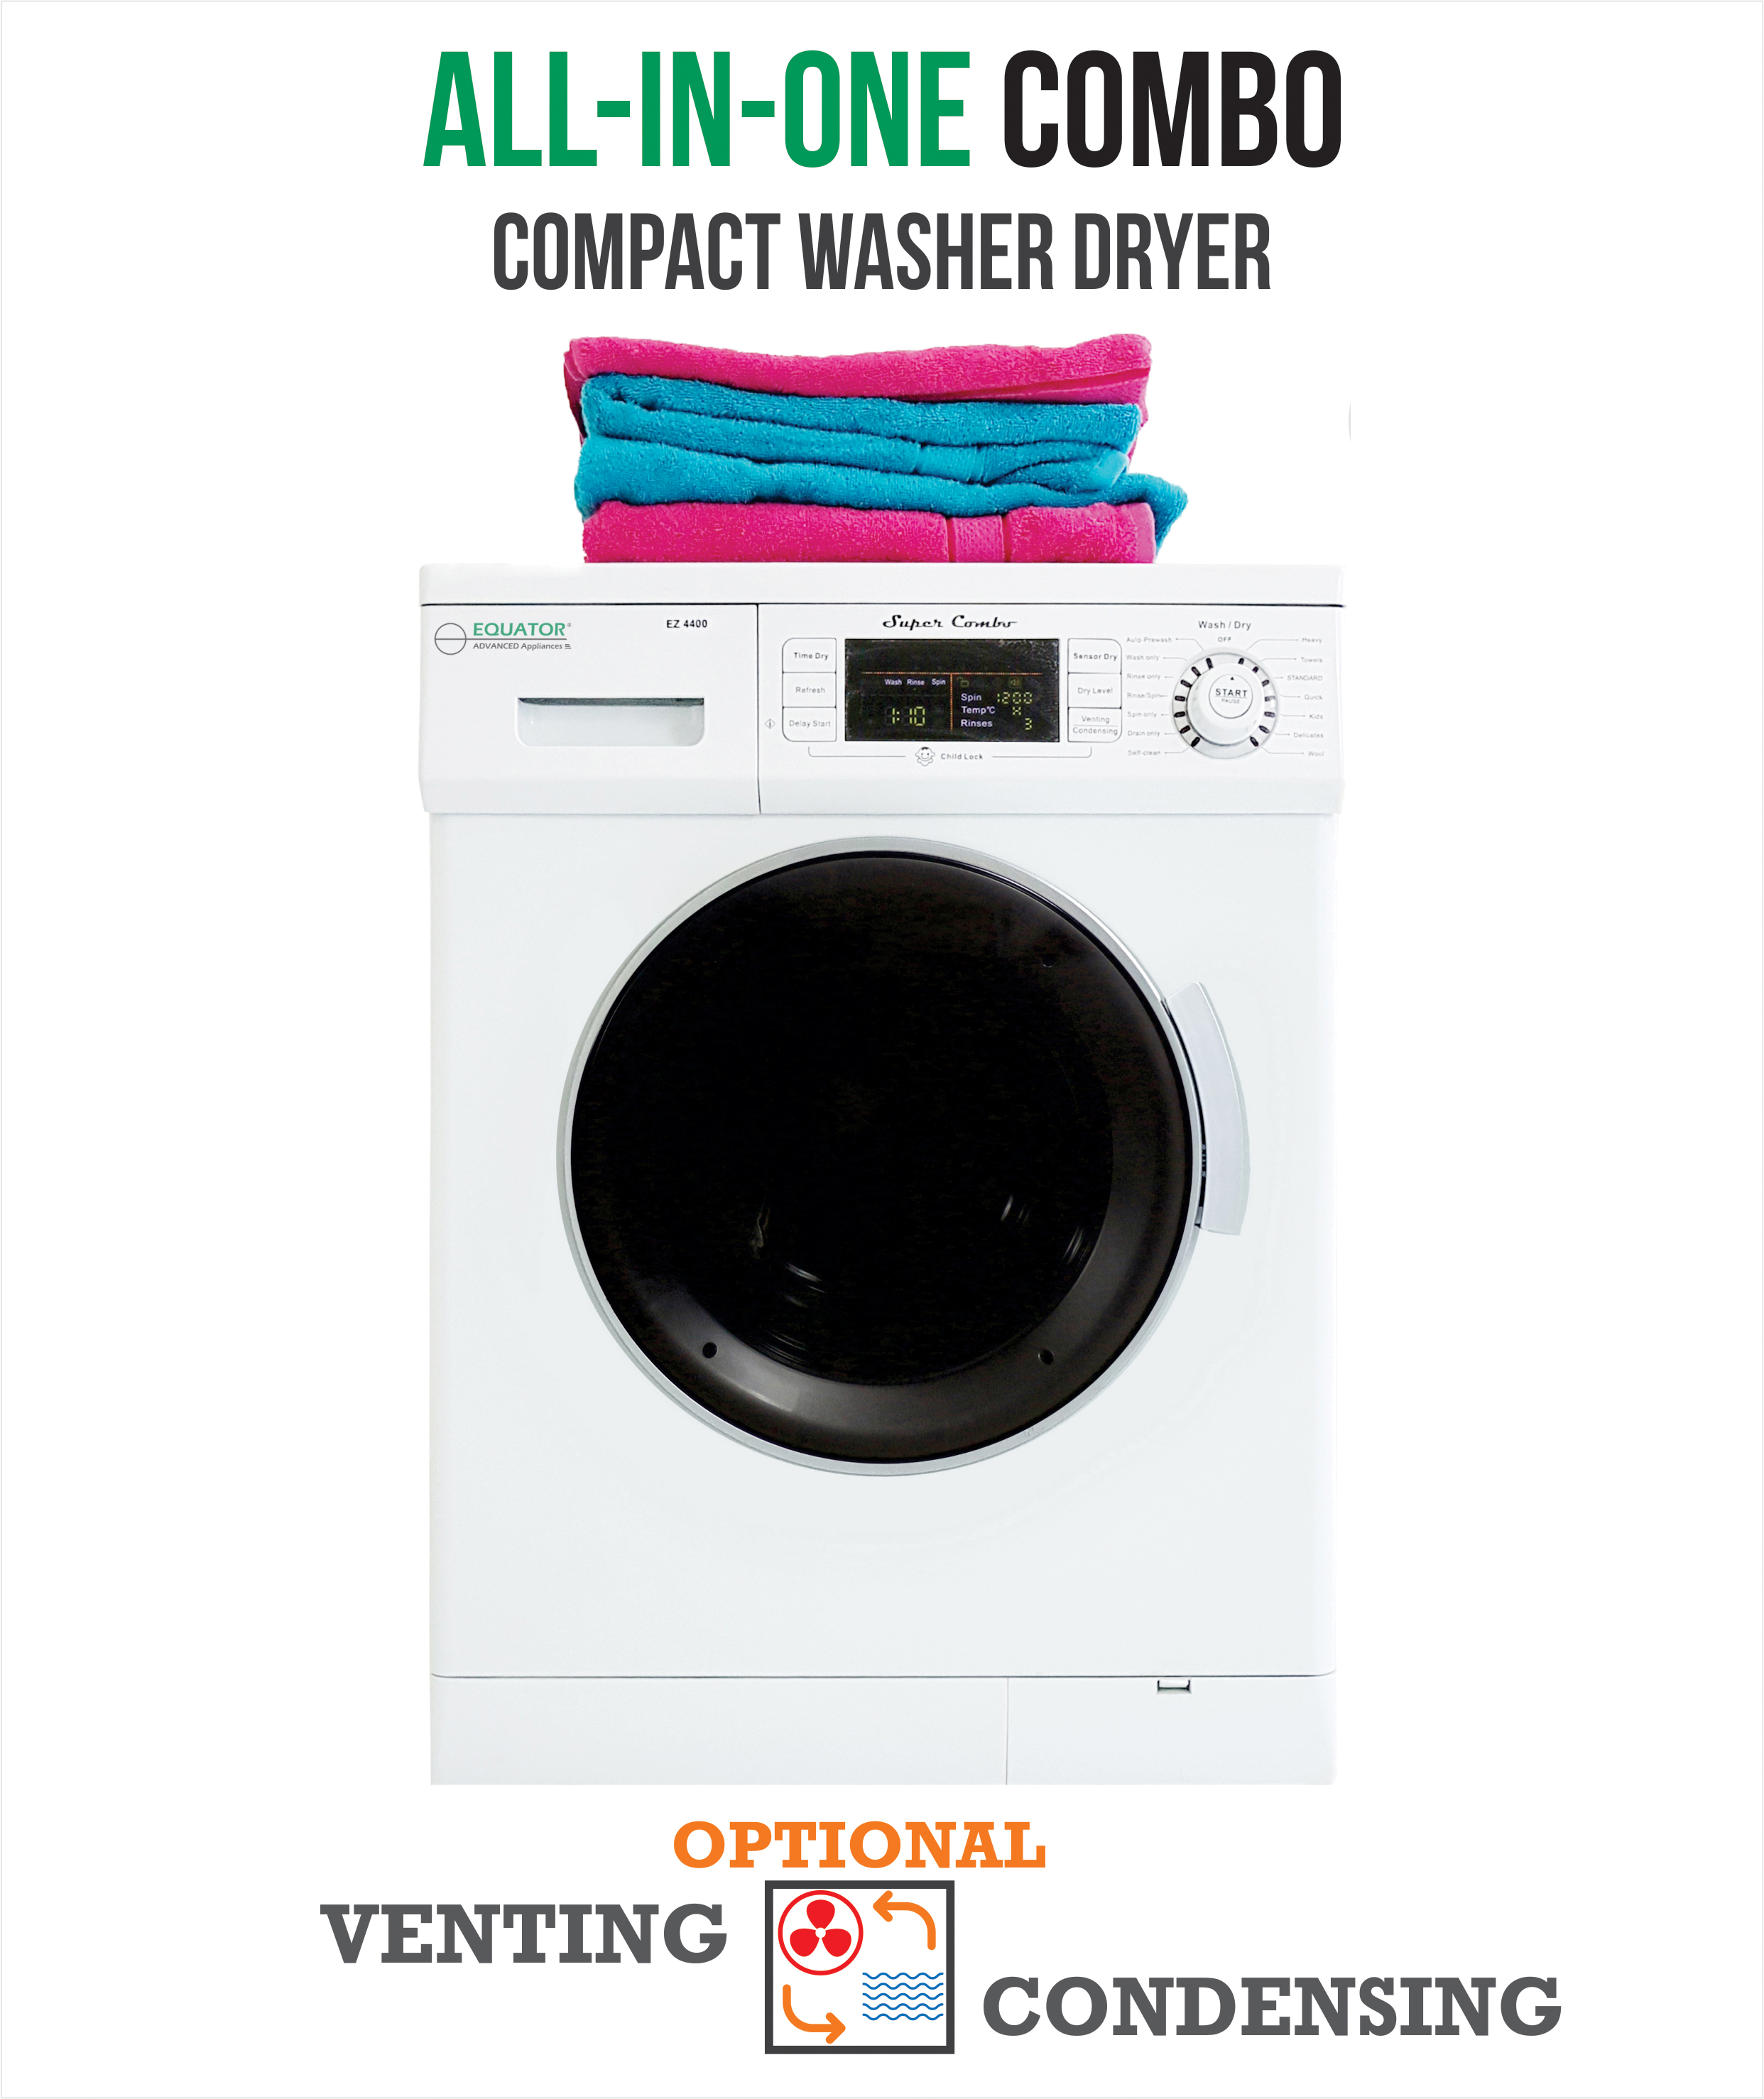 All-in-One 13 lb. 1200 RPM Compact Combo Washer Dryer with Optional Condensing/ Venting  Sensor Dry  Auto Water Level